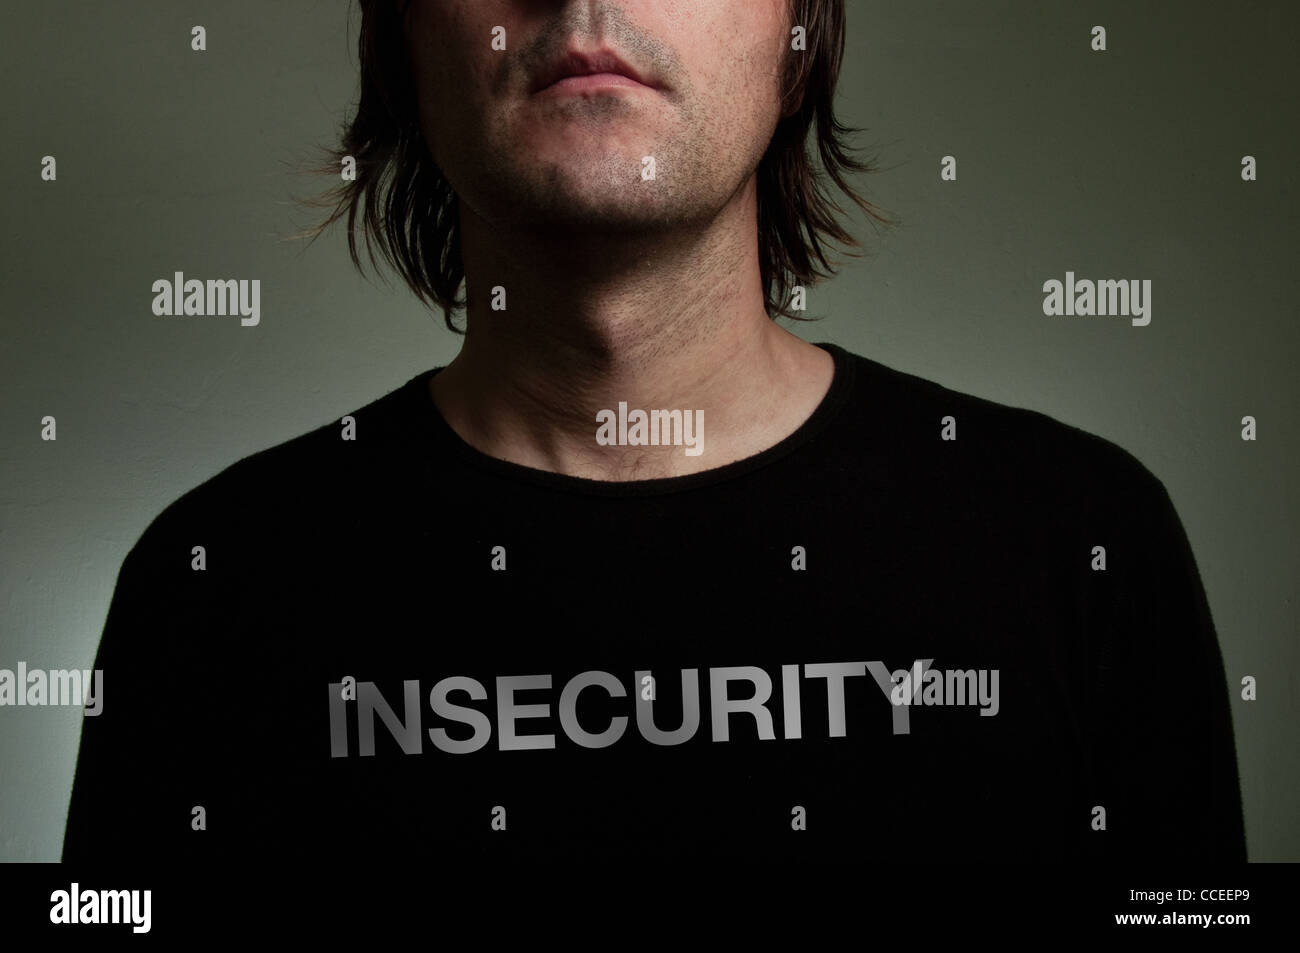 Man wearing a black shirt with 'Insecurity' title on his chest. Shiness, insecurity, solitude concept image. - Stock Image